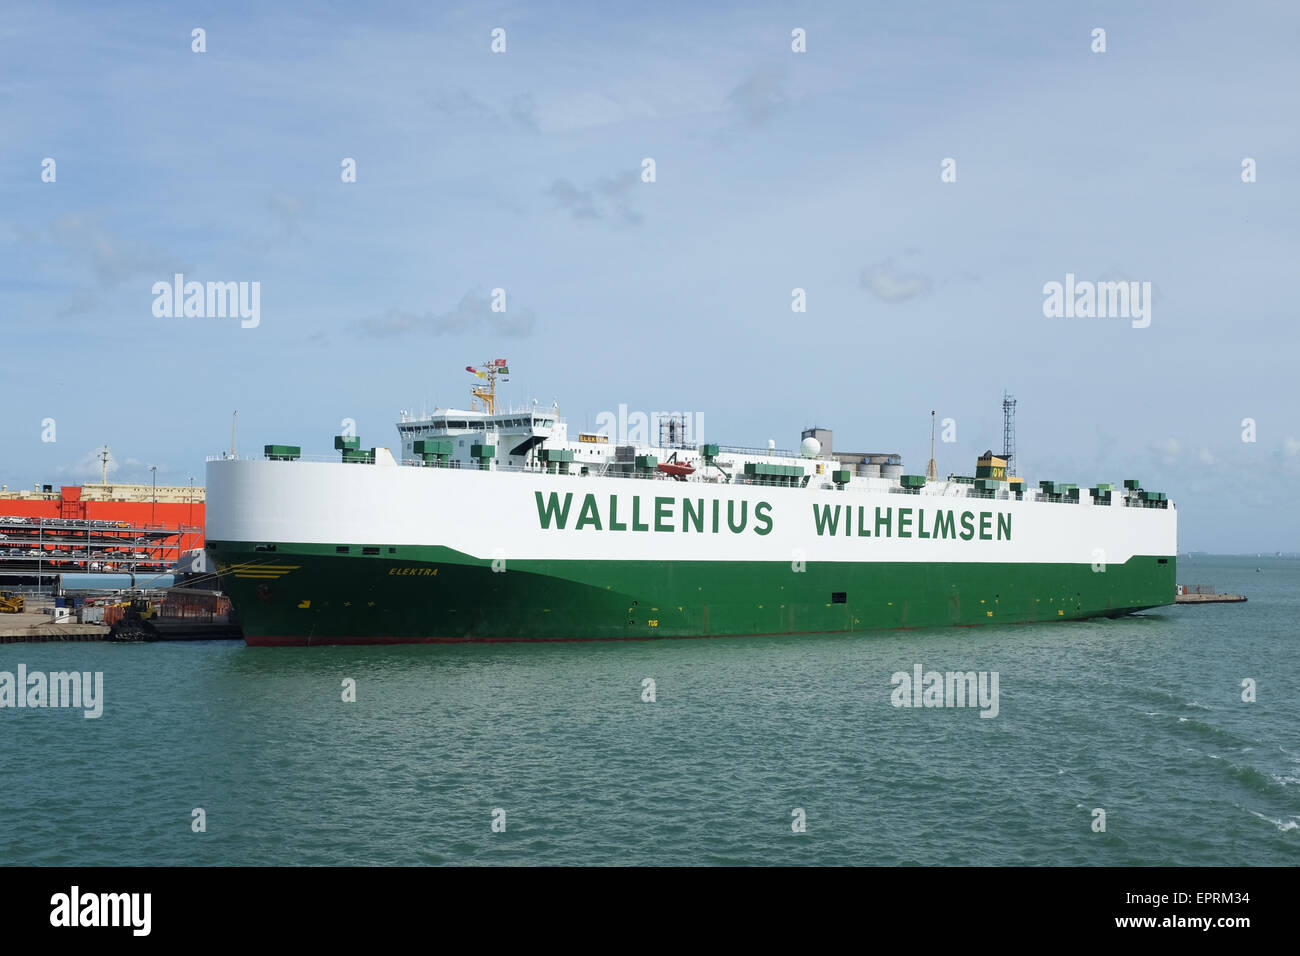 A ship operated by Wallenius Wilhelmsen Logistics, docked in Southampton, England. - Stock Image